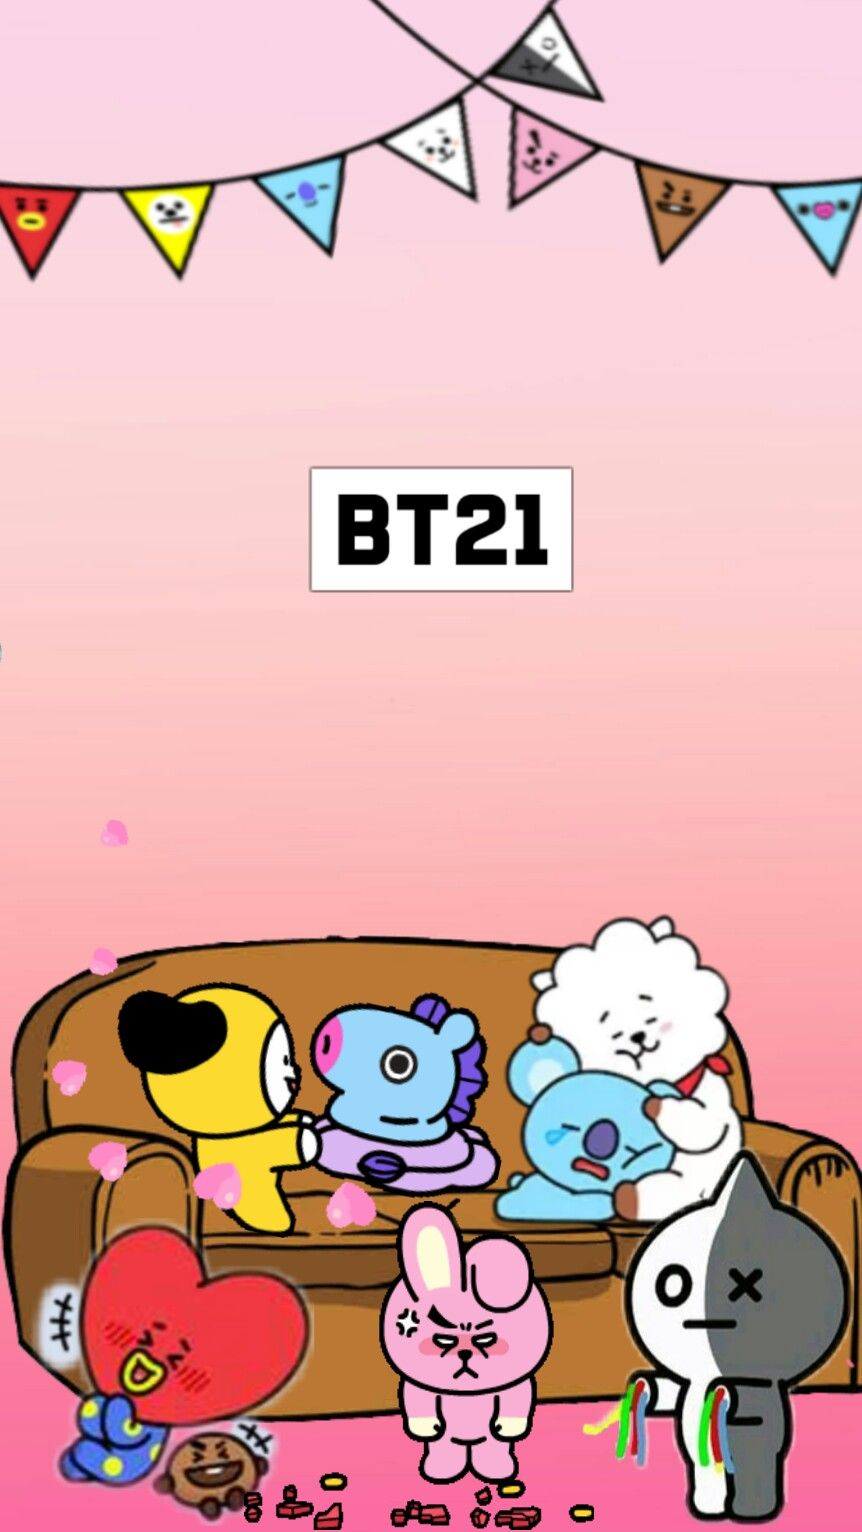 Bt21 wallpaper aa bt21 bts bt21wallpaper bt21cooky